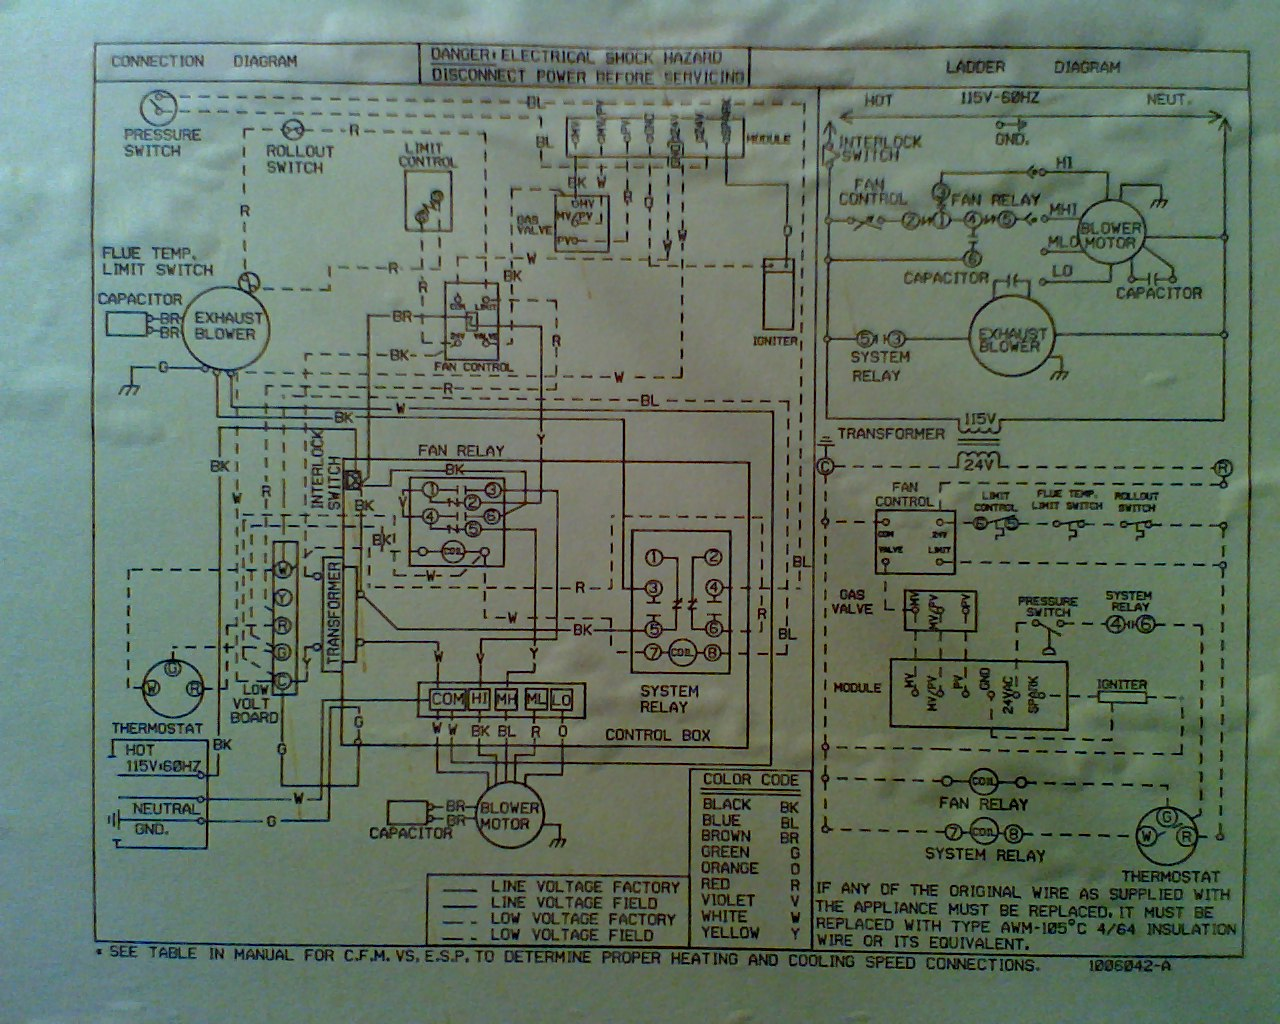 Tempstar 2200 Wiring Diagram 28 Images Simple Comfort Thermostat 2009 11 20 231603 1120091711a Air Conditioner Y Wire Grihon Com Ac Coolers Devices